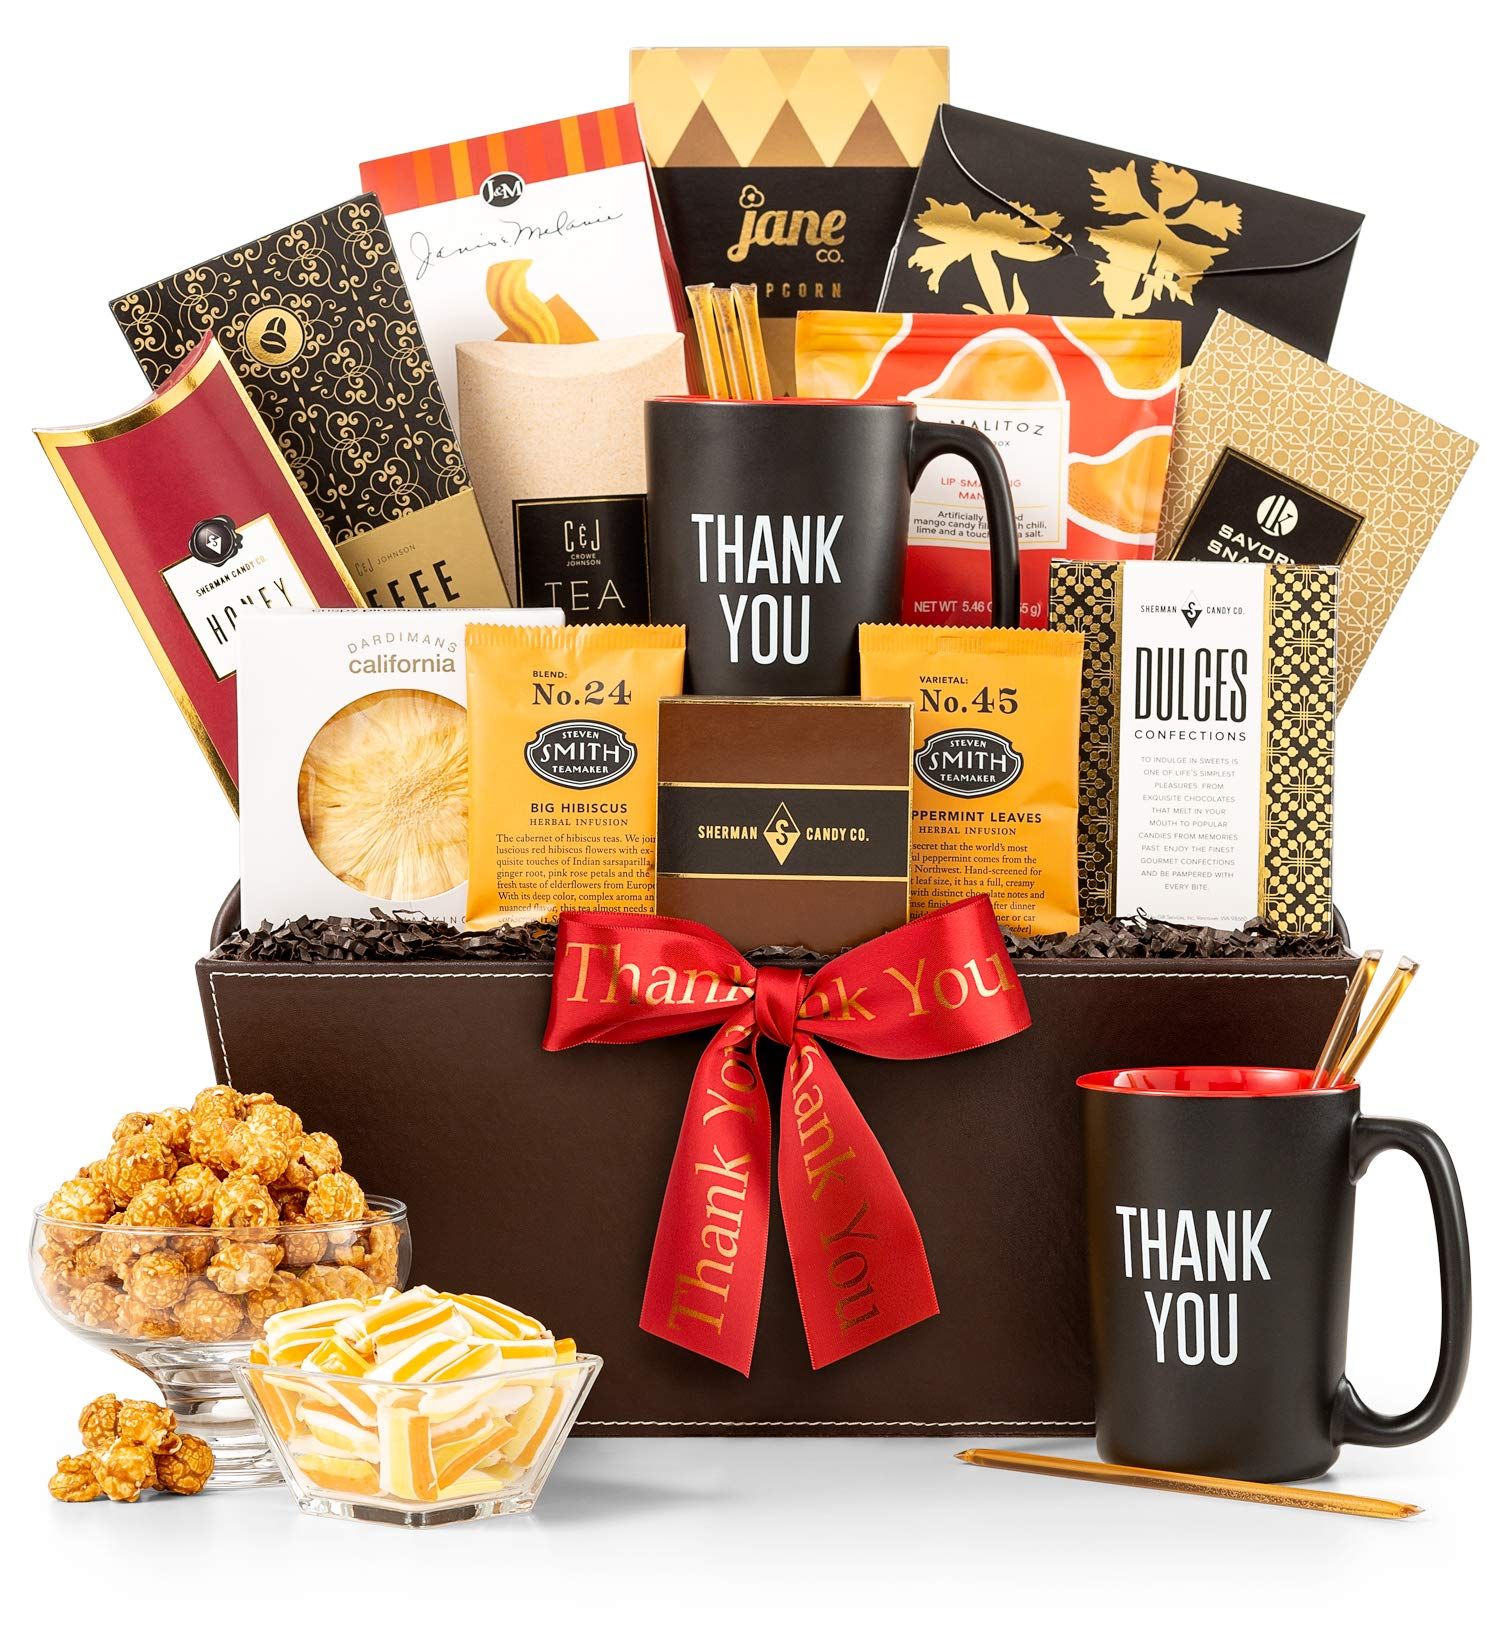 CDM product GiftTree A Thousand Thanks Gift Basket | Thank You Mug Included | Honey Sticks, Almond Biscotti, Peanut Brittle, Steven Smith Tea, Ghirardelli Hot Cocoa and More | big image